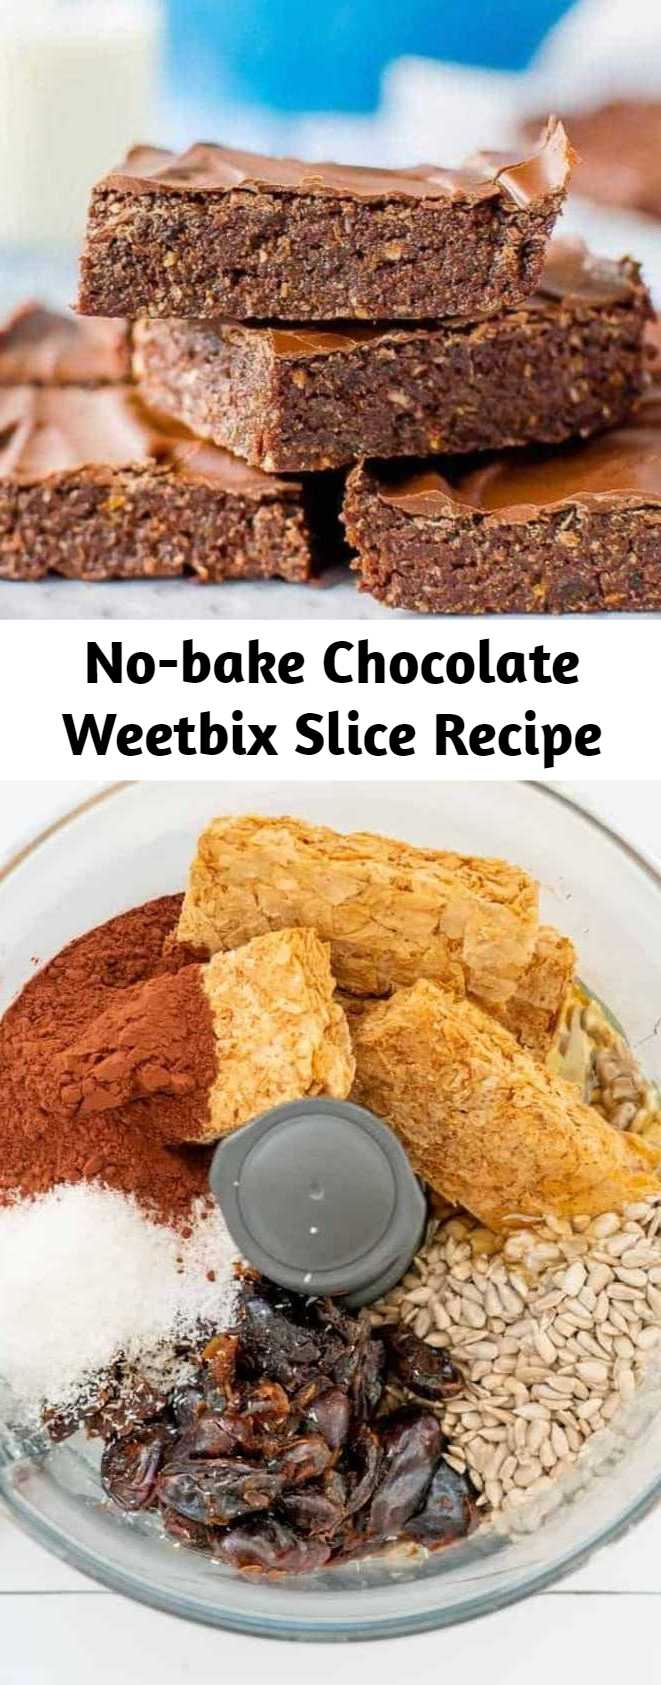 No-bake Chocolate Weetbix Slice Recipe - No-bake chocolate Weetbix slice, easy kid-friendly recipe made with Weetabix, or wheat biscuit breakfast cereal.